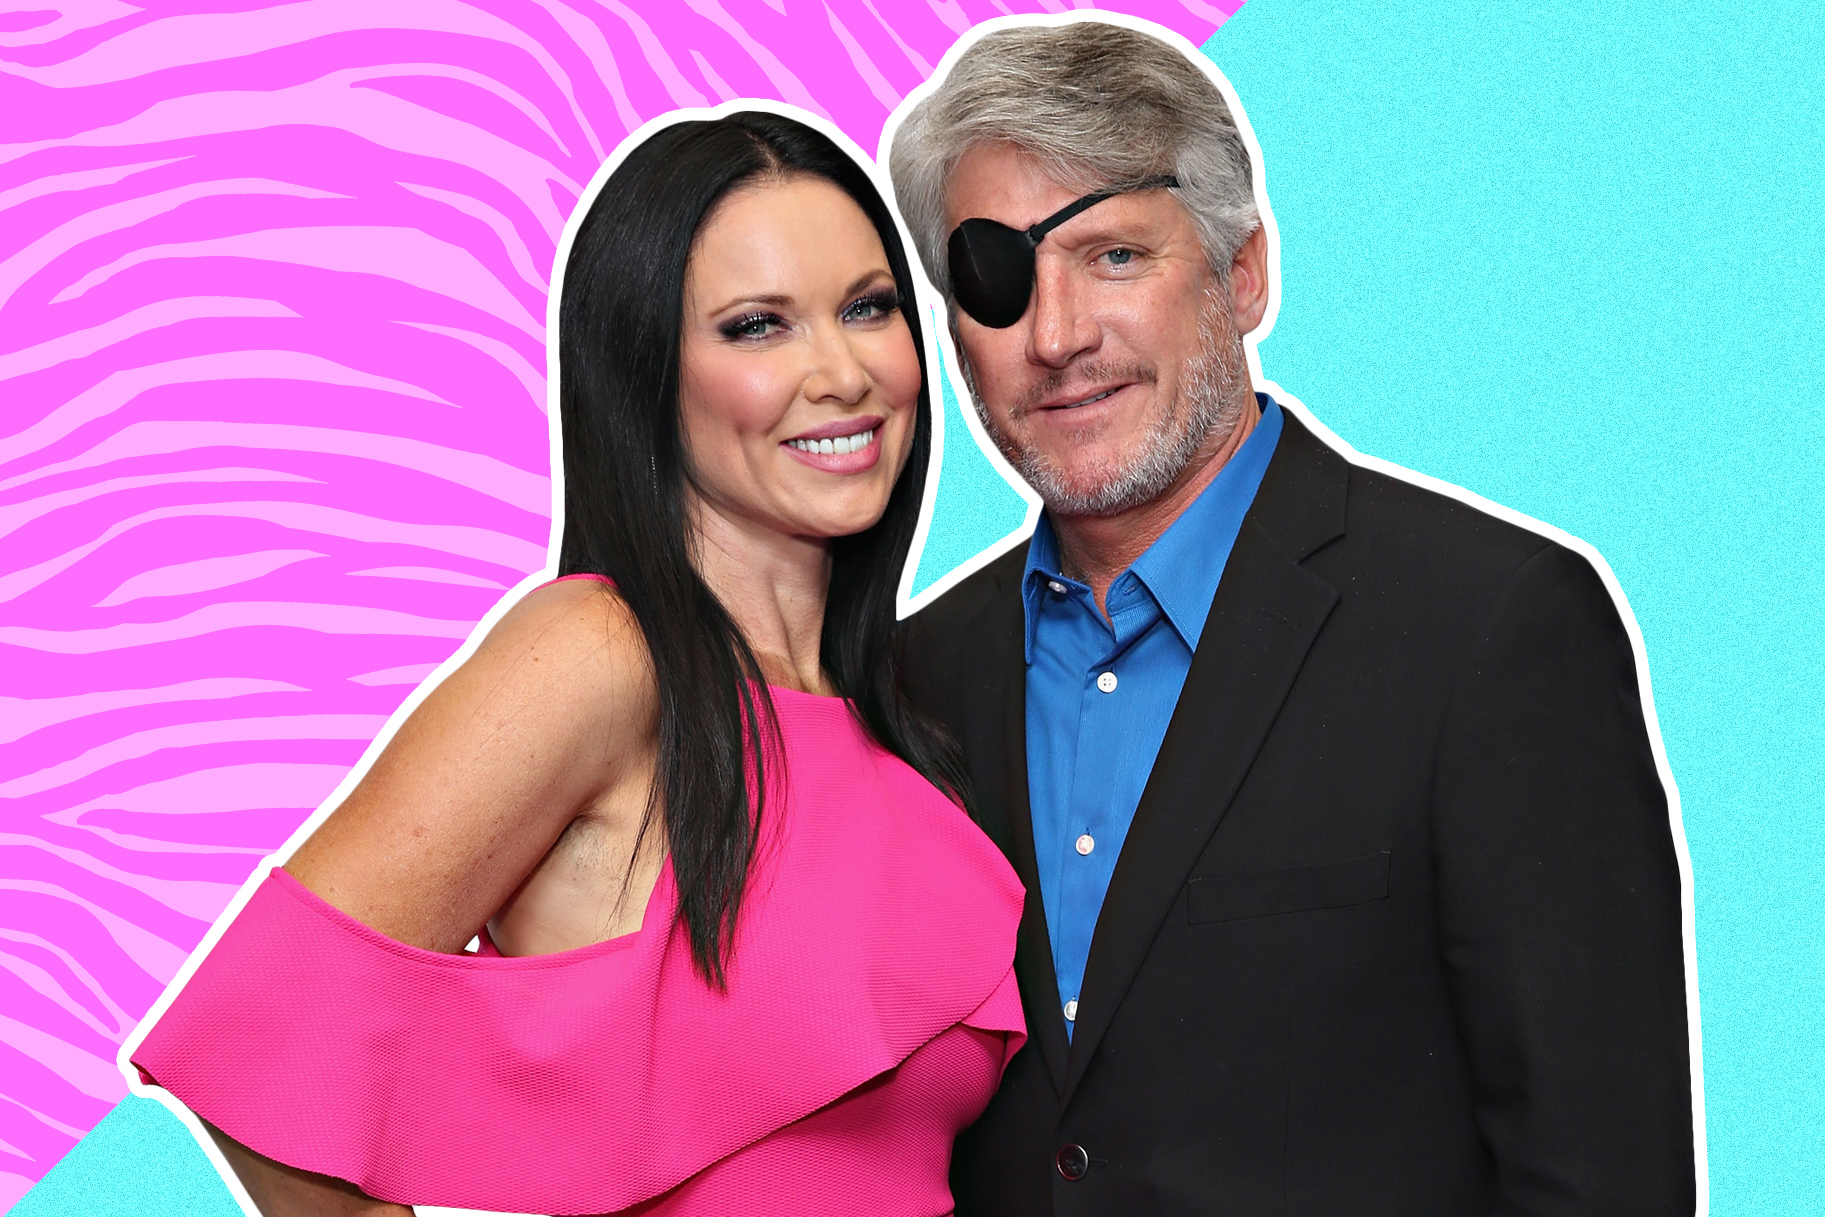 LeeAnne Locken and Rich Emberlin